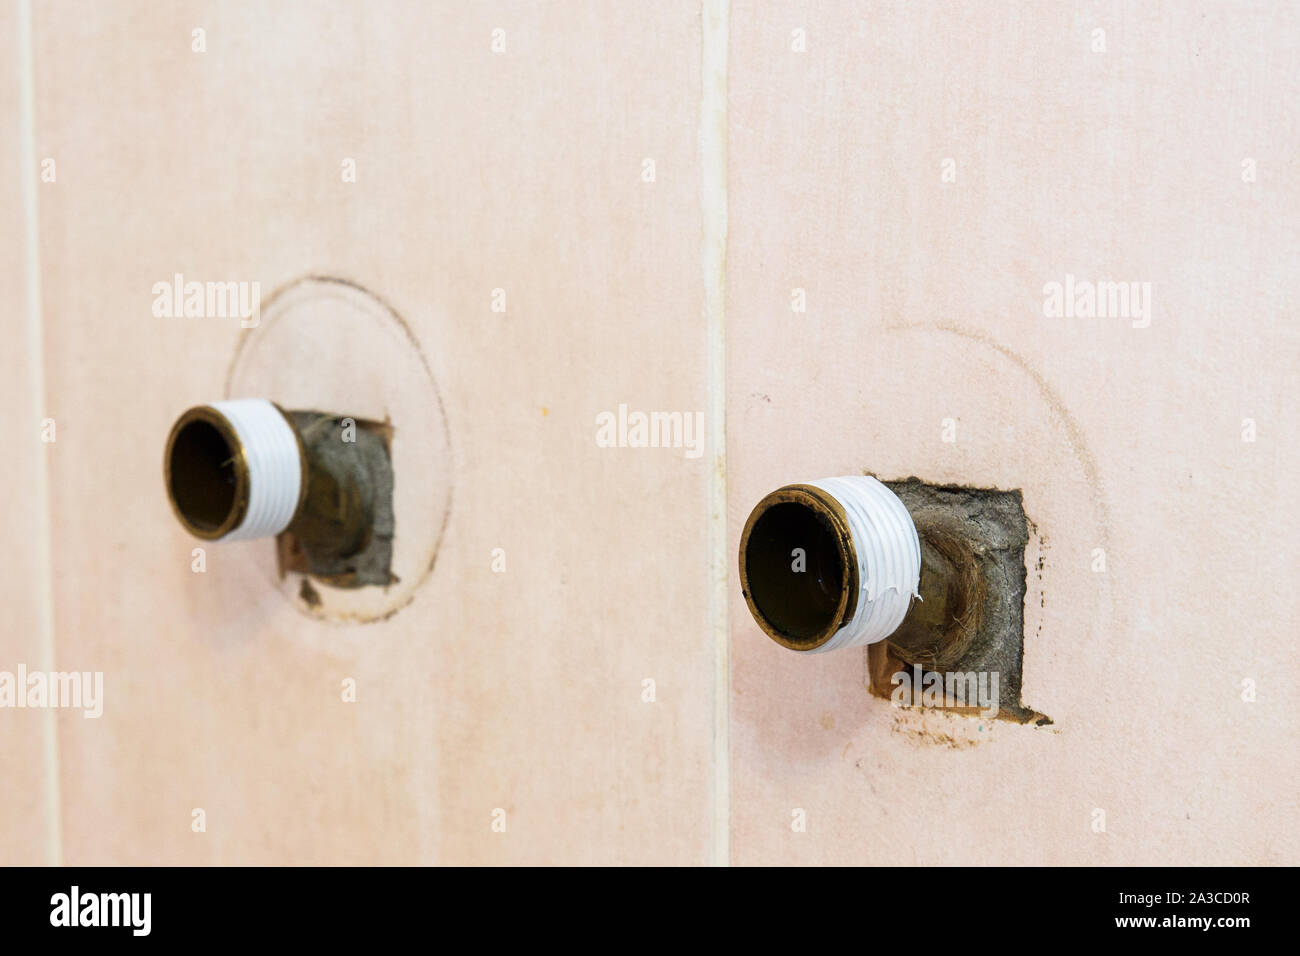 The plumber puts Teflon seam FUM tape on the thread before installing the faucet tap. Stock Photo